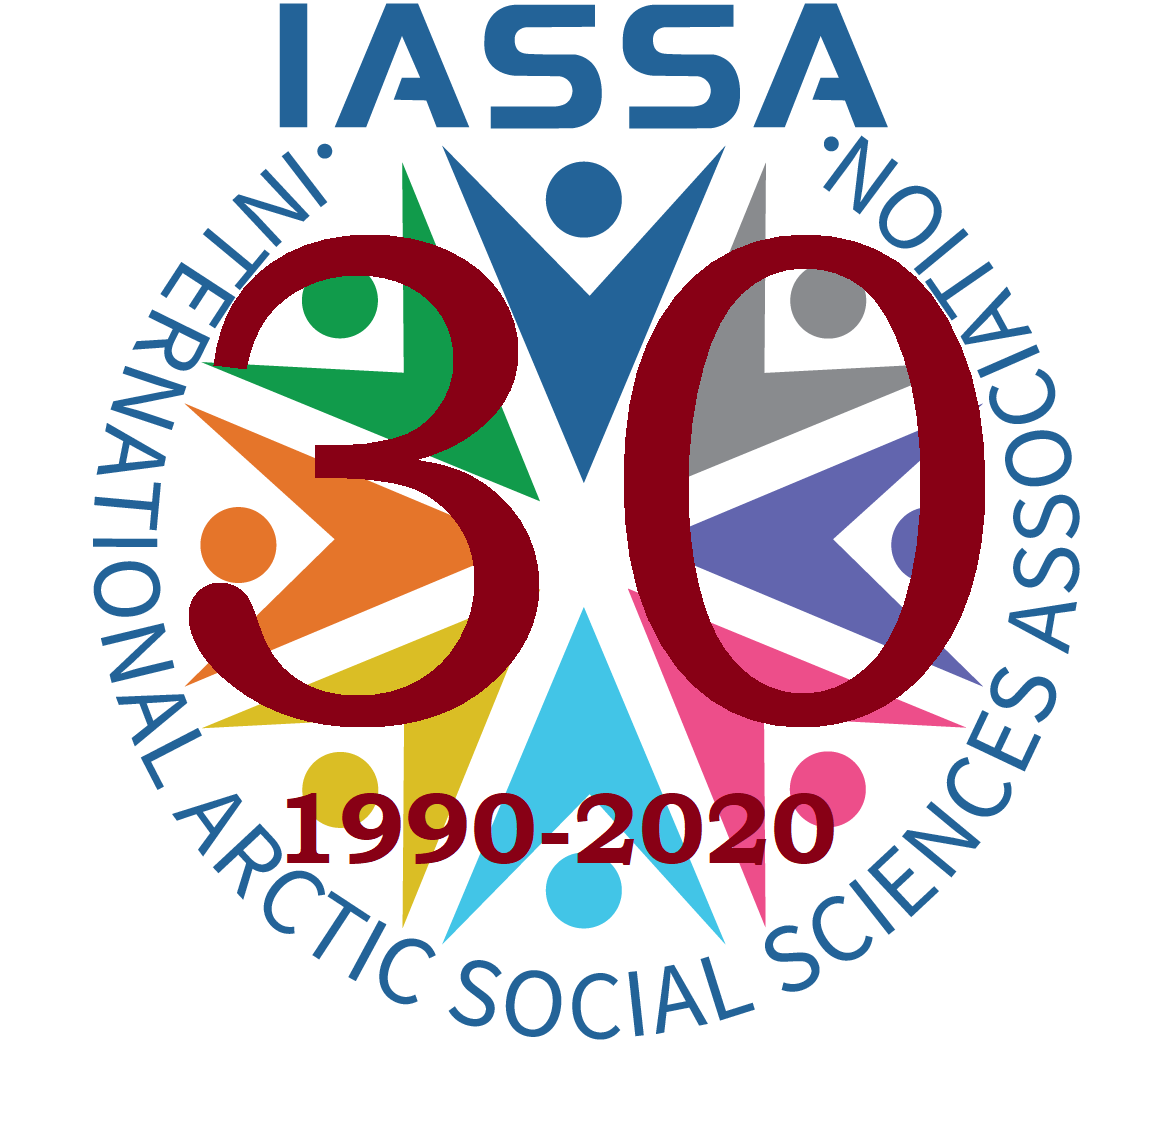 iassa straightcrownlogo Copy